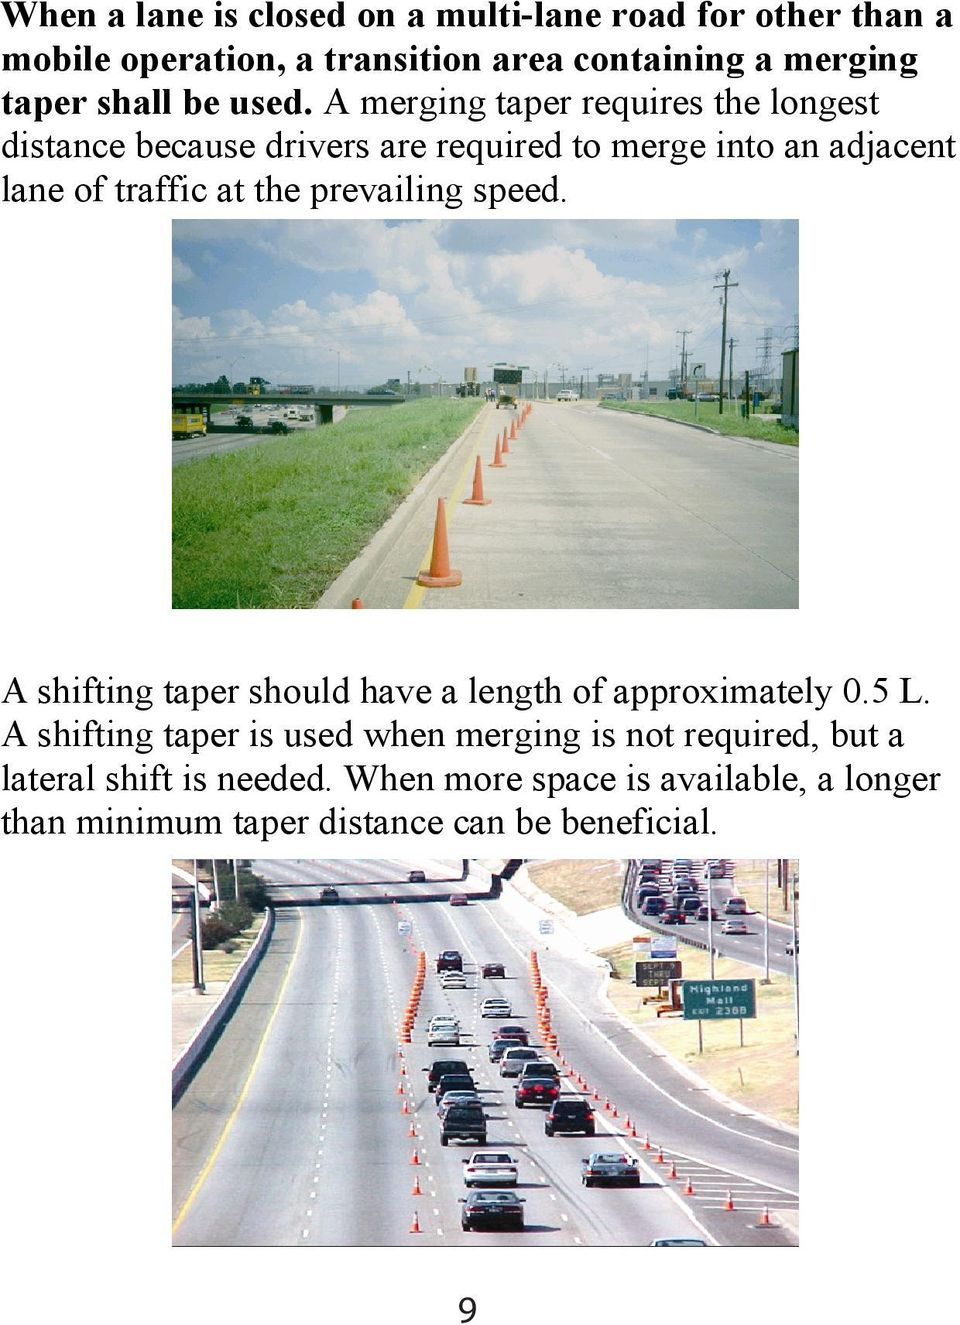 A merging taper requires the longest distance because drivers are required to merge into an adjacent lane of traffic at the